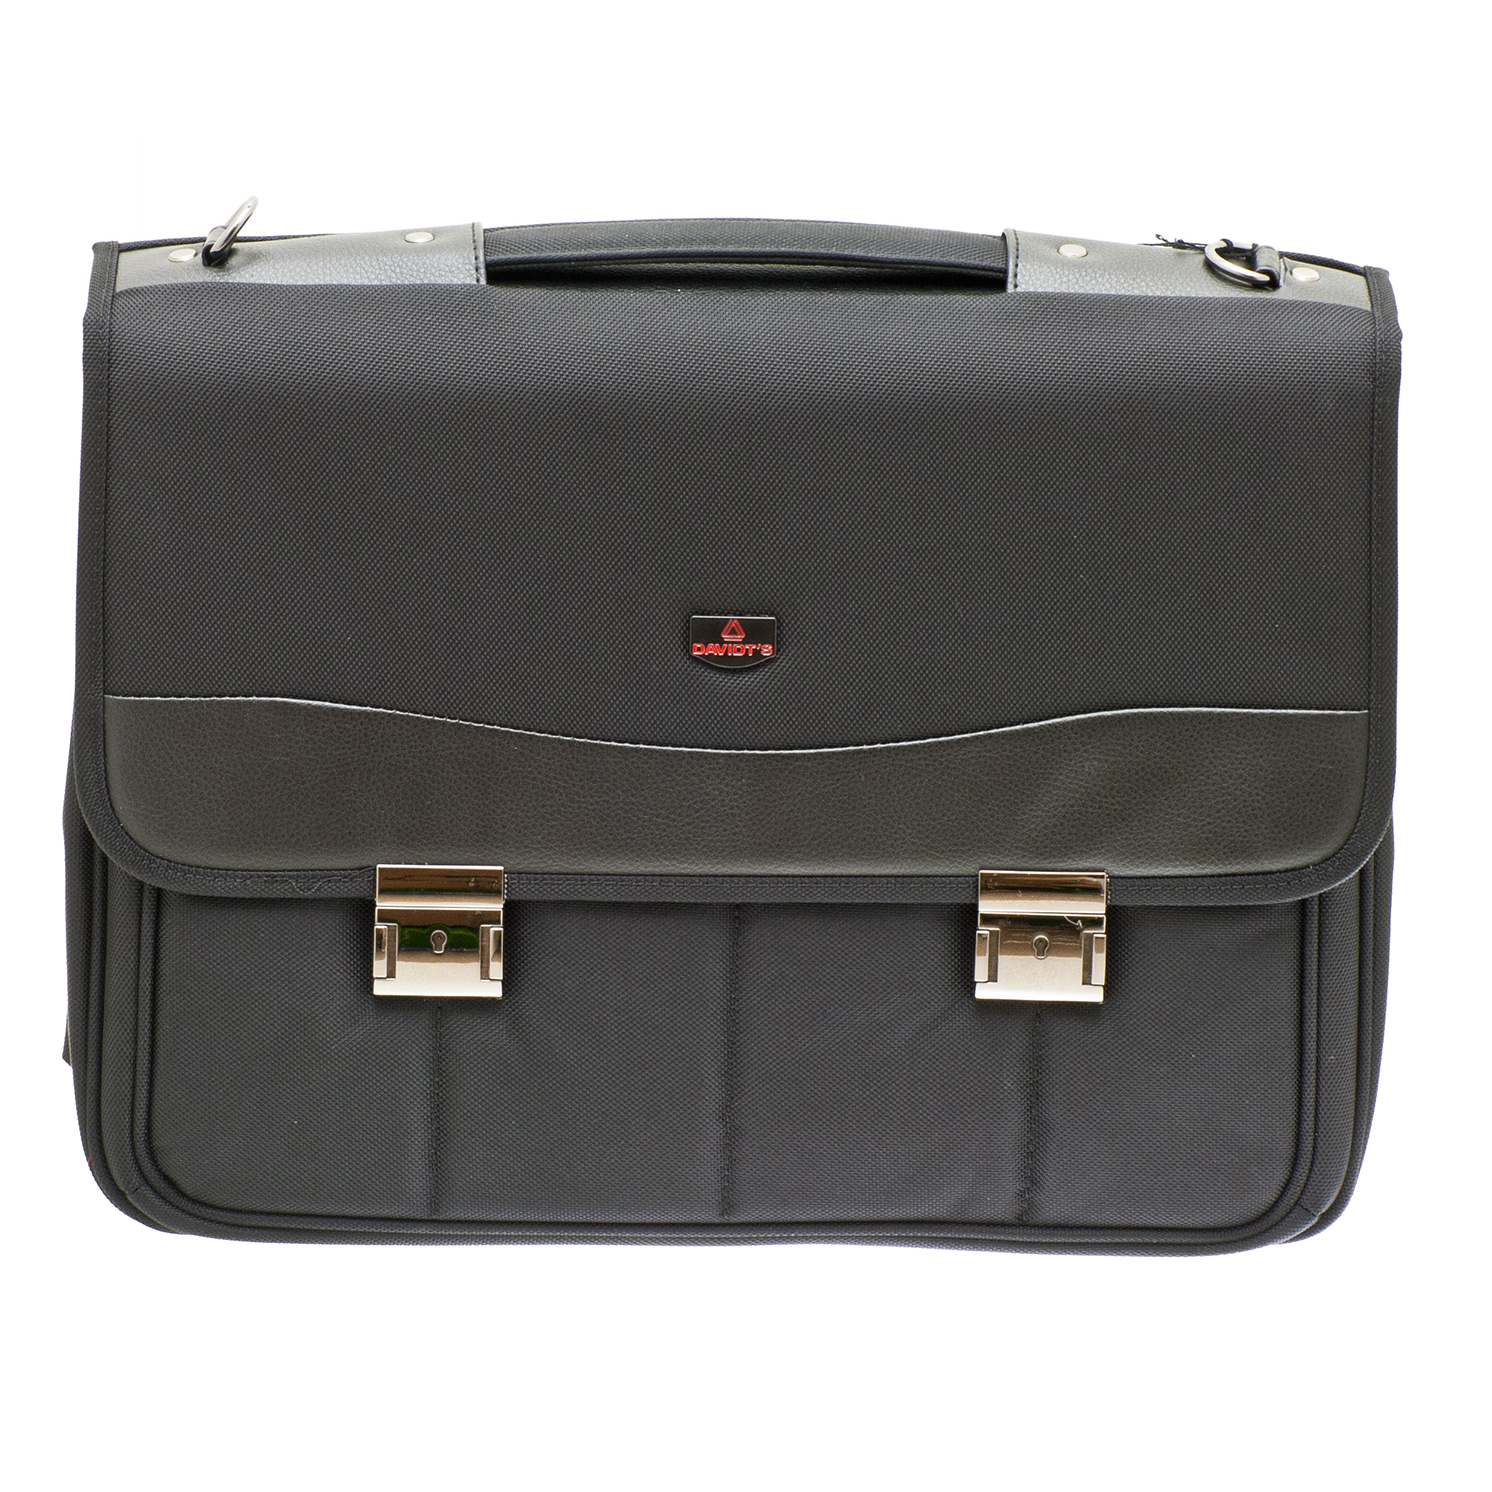 Davidt's – Black Laptop Briefcase Business Bag from the Monte Carlo Range